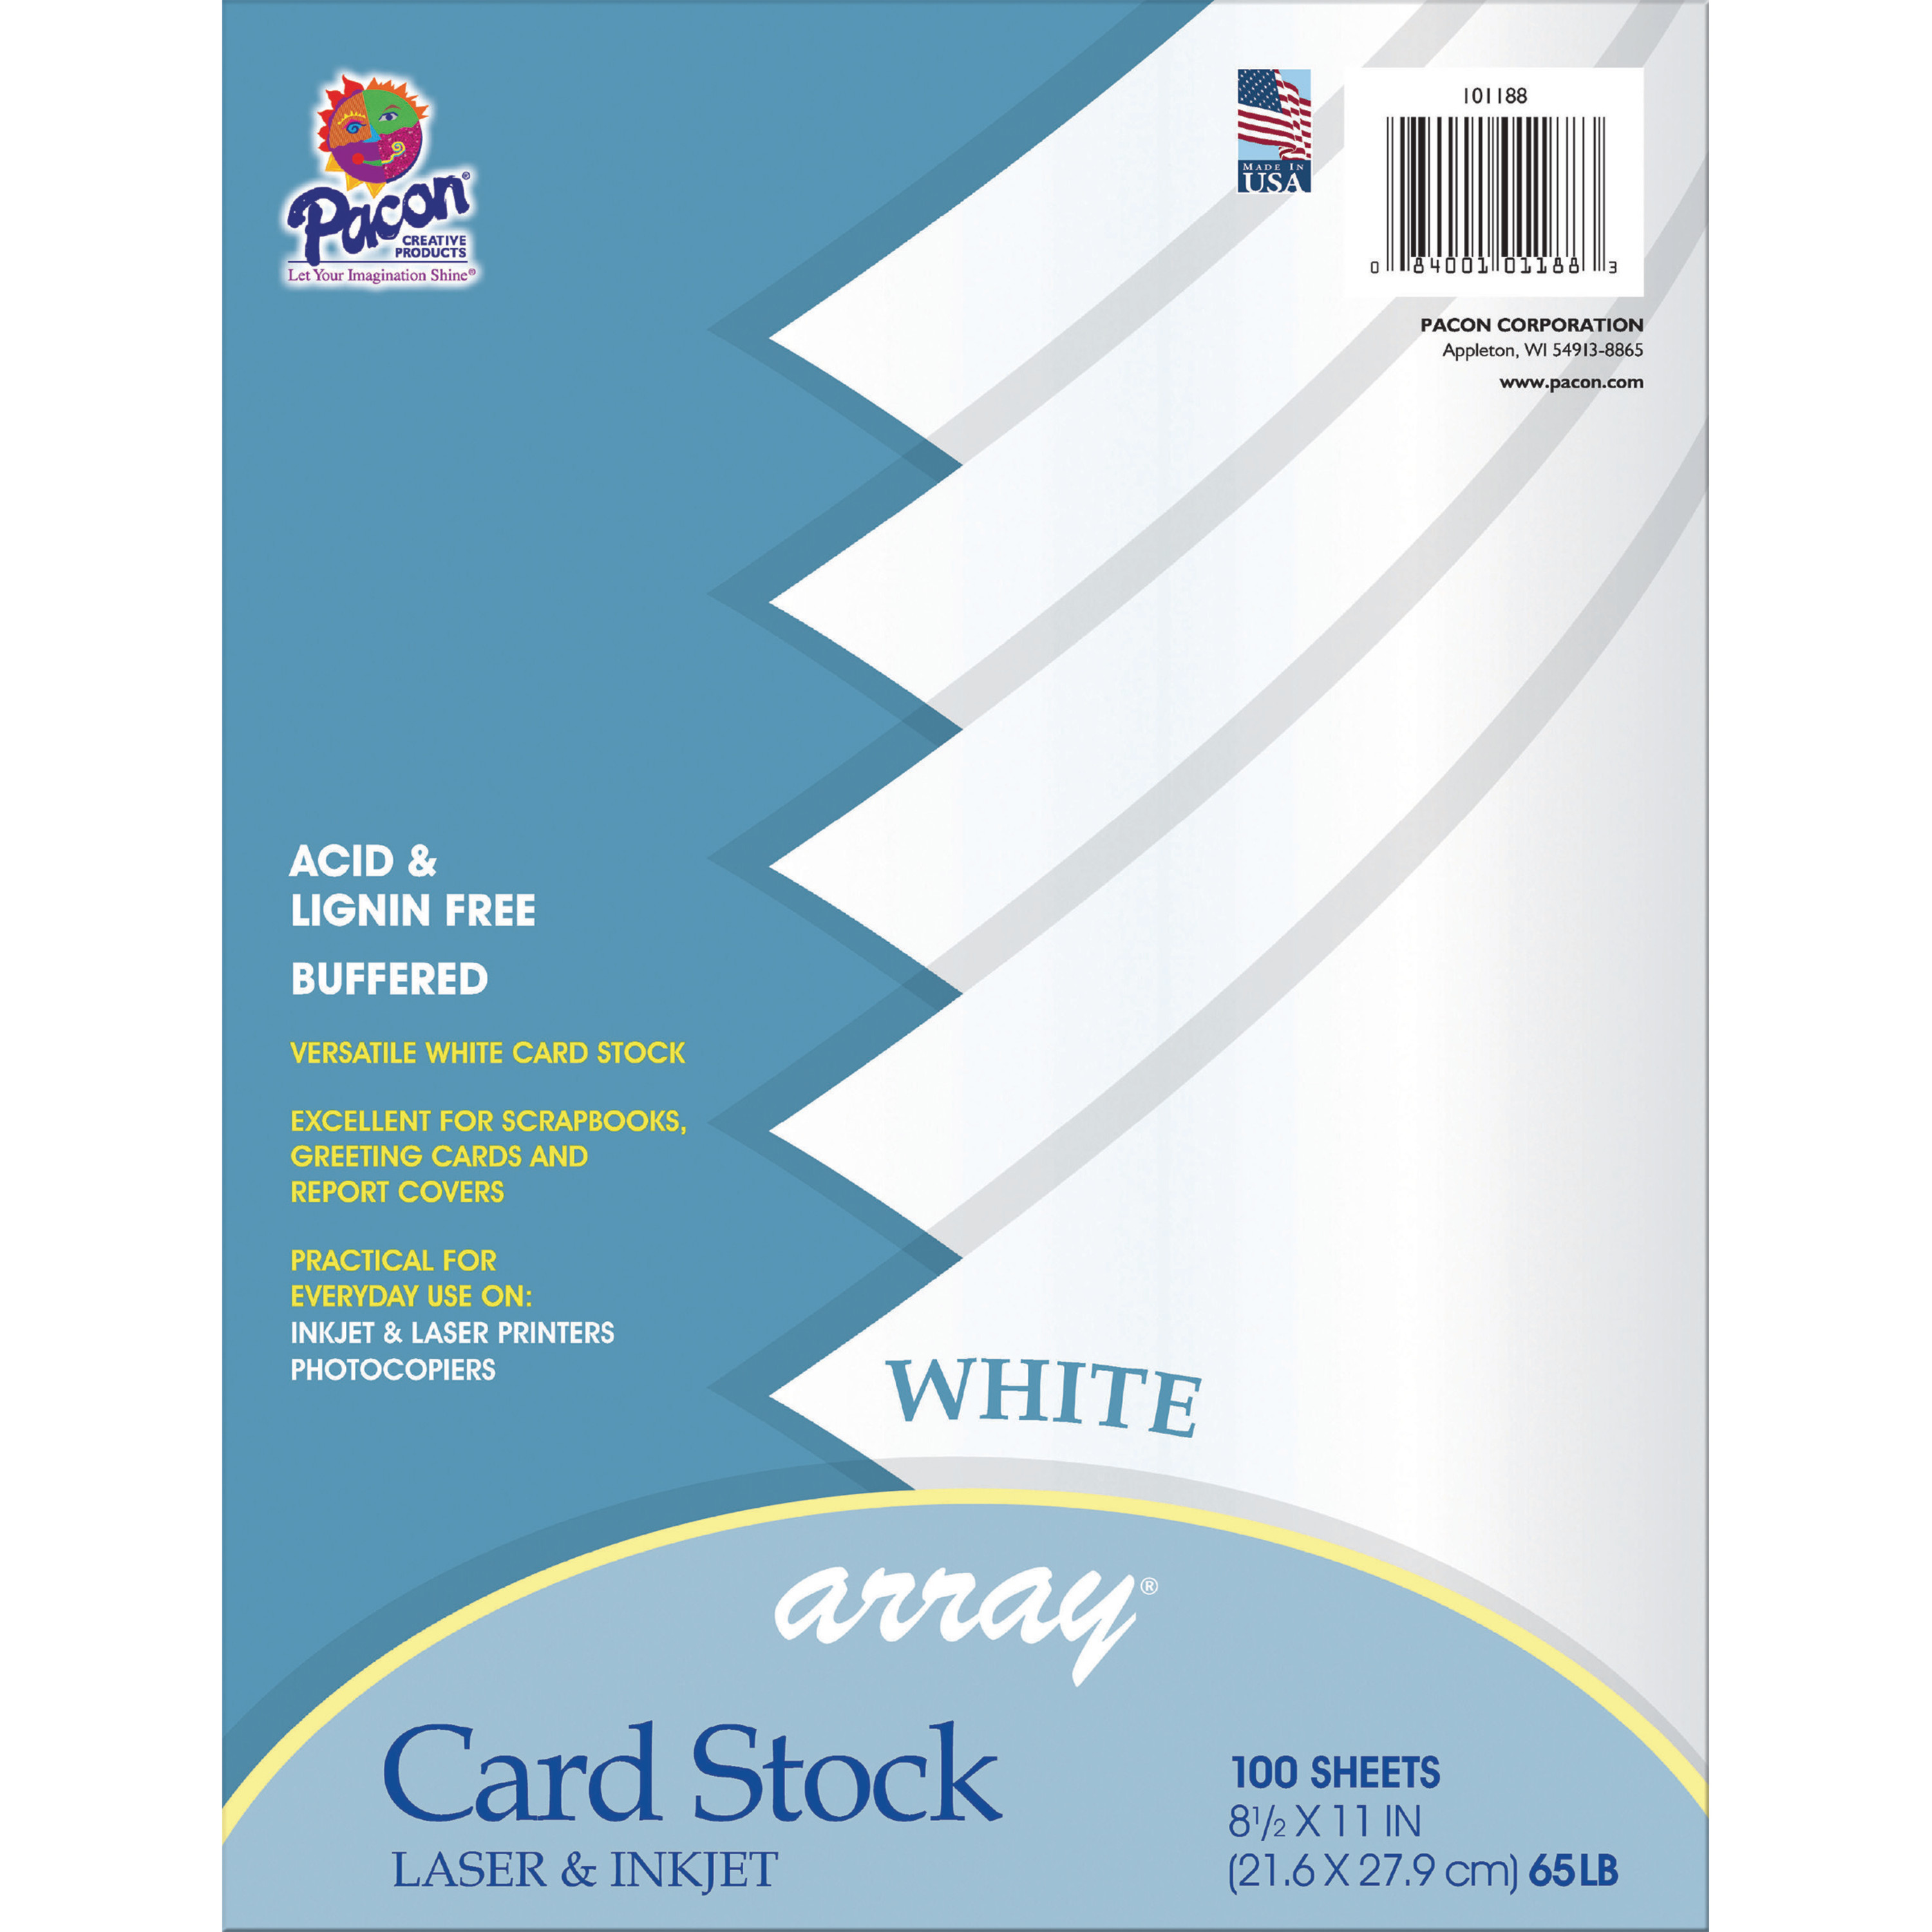 Pacon Card Stock, 8 5